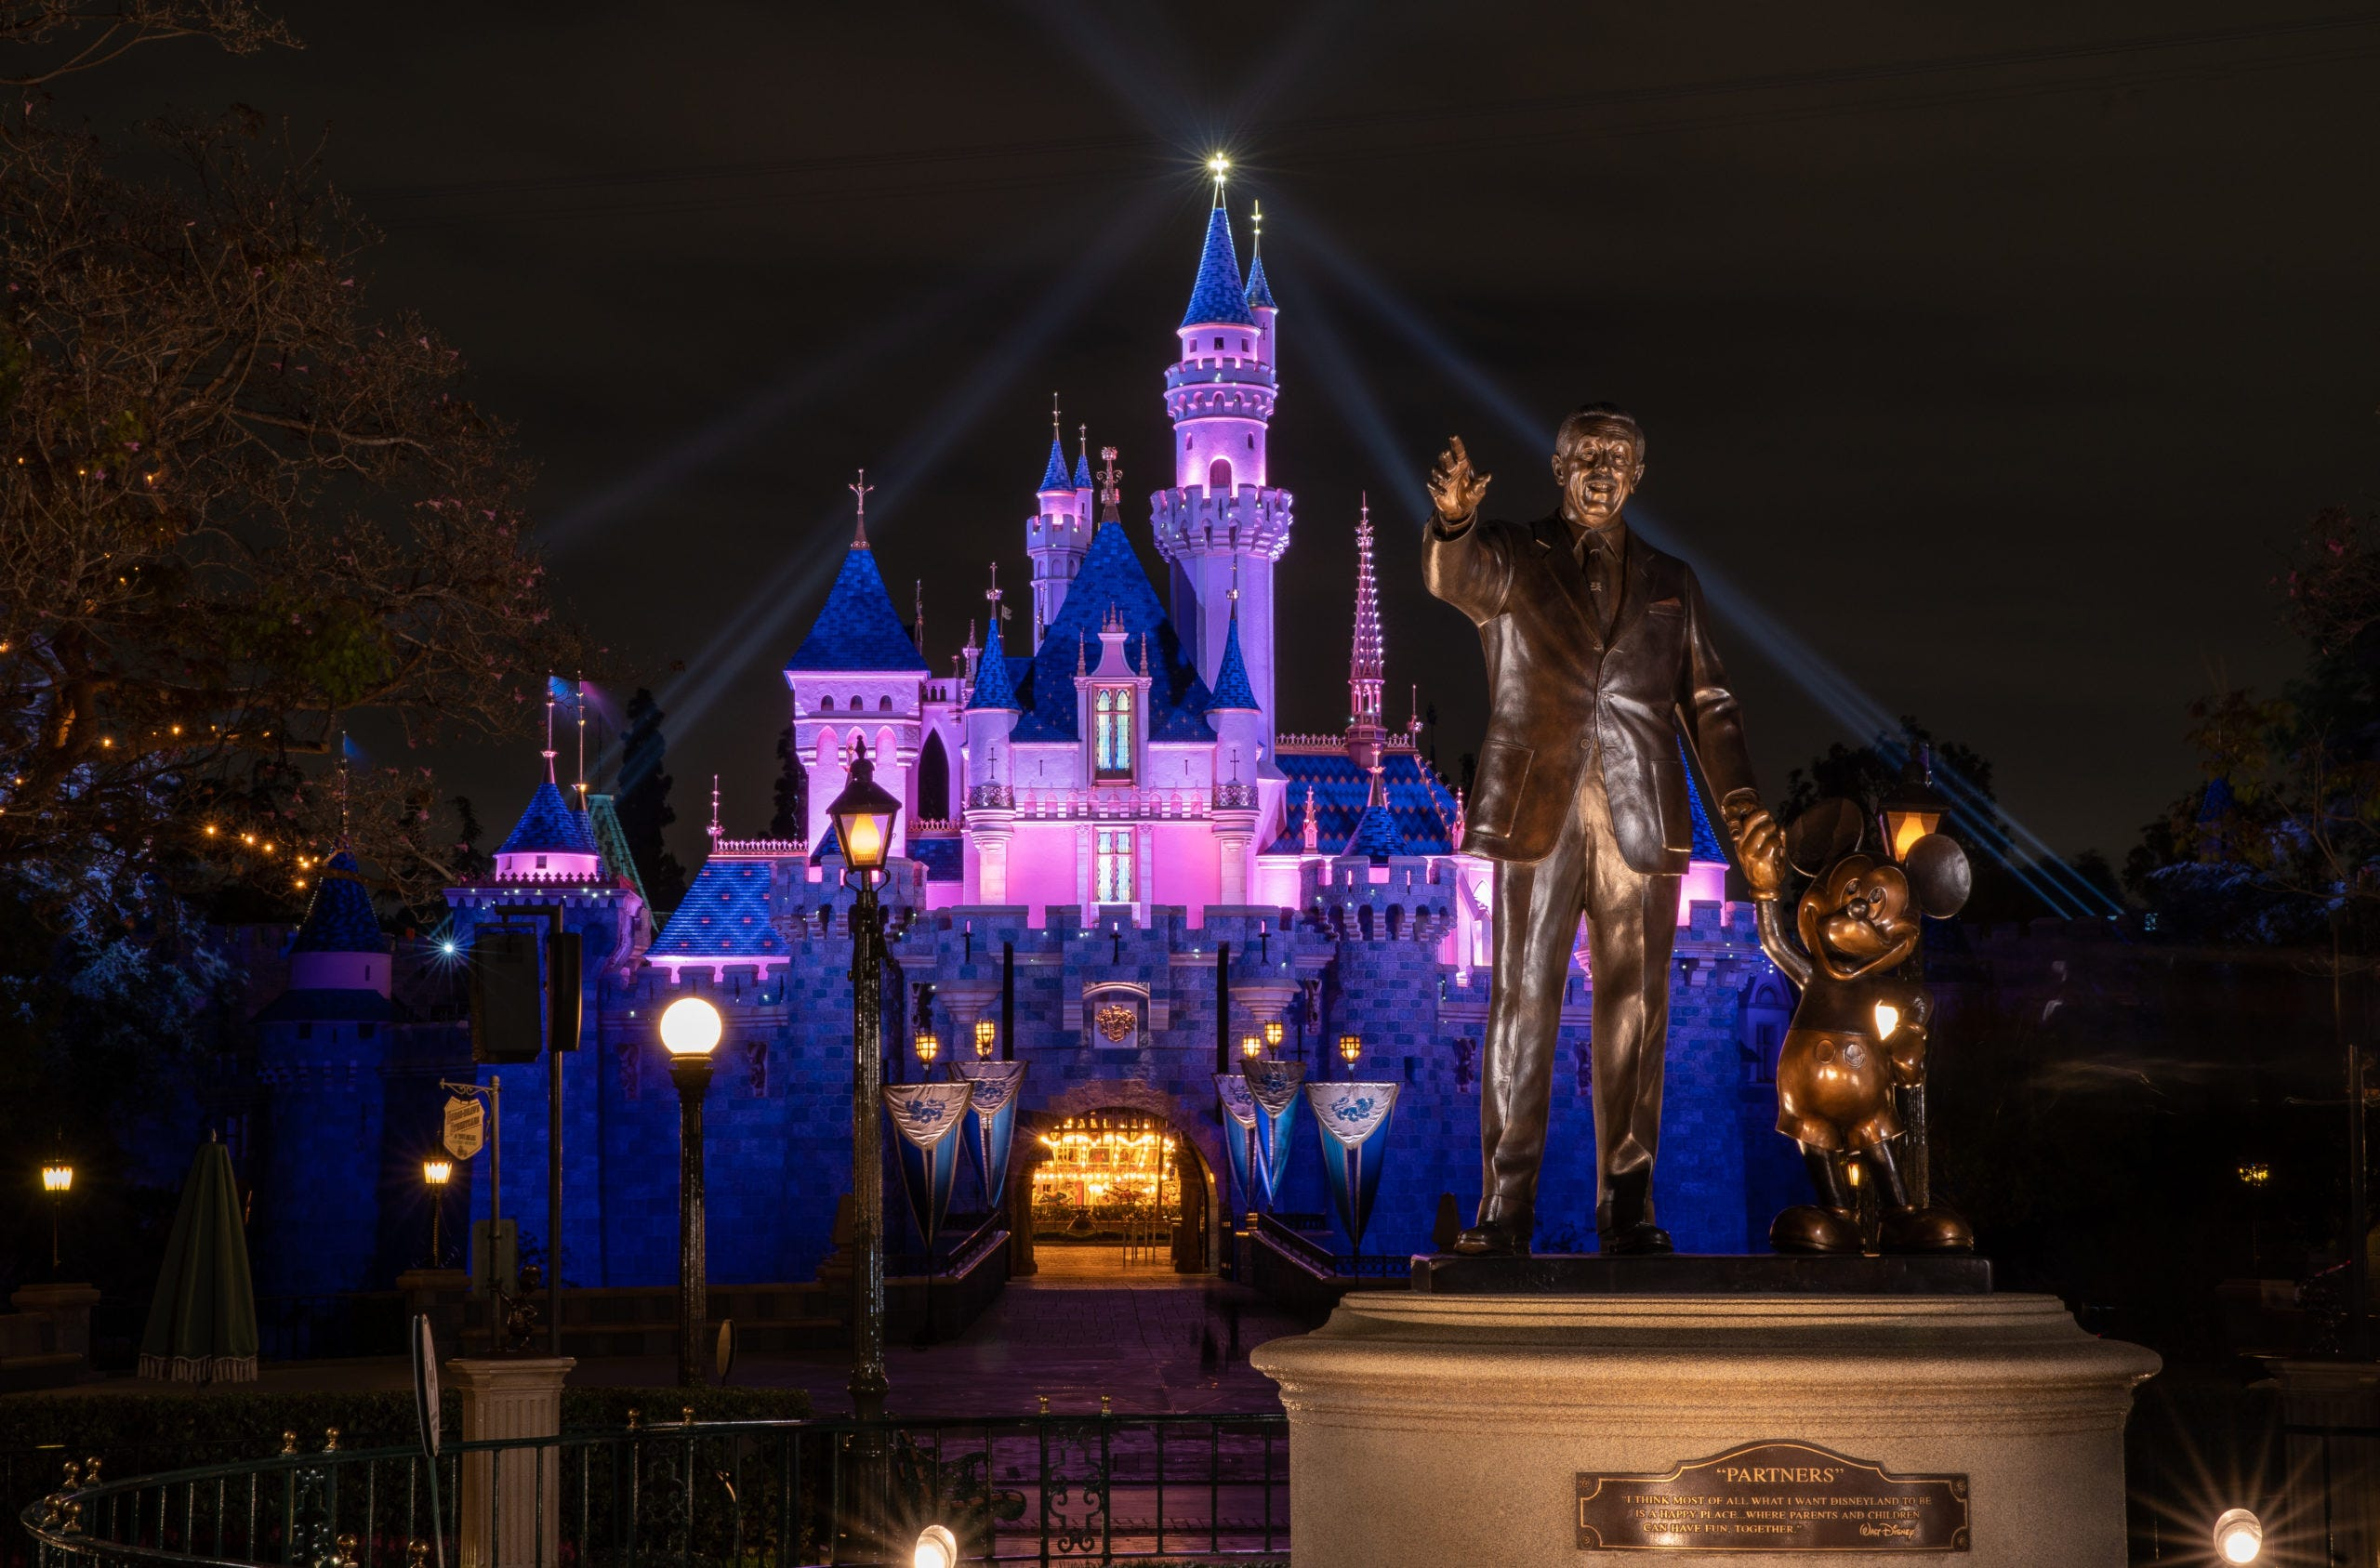 Disneyland reopening with masks, reservations and more COVID protocols. What to expect after extended closure